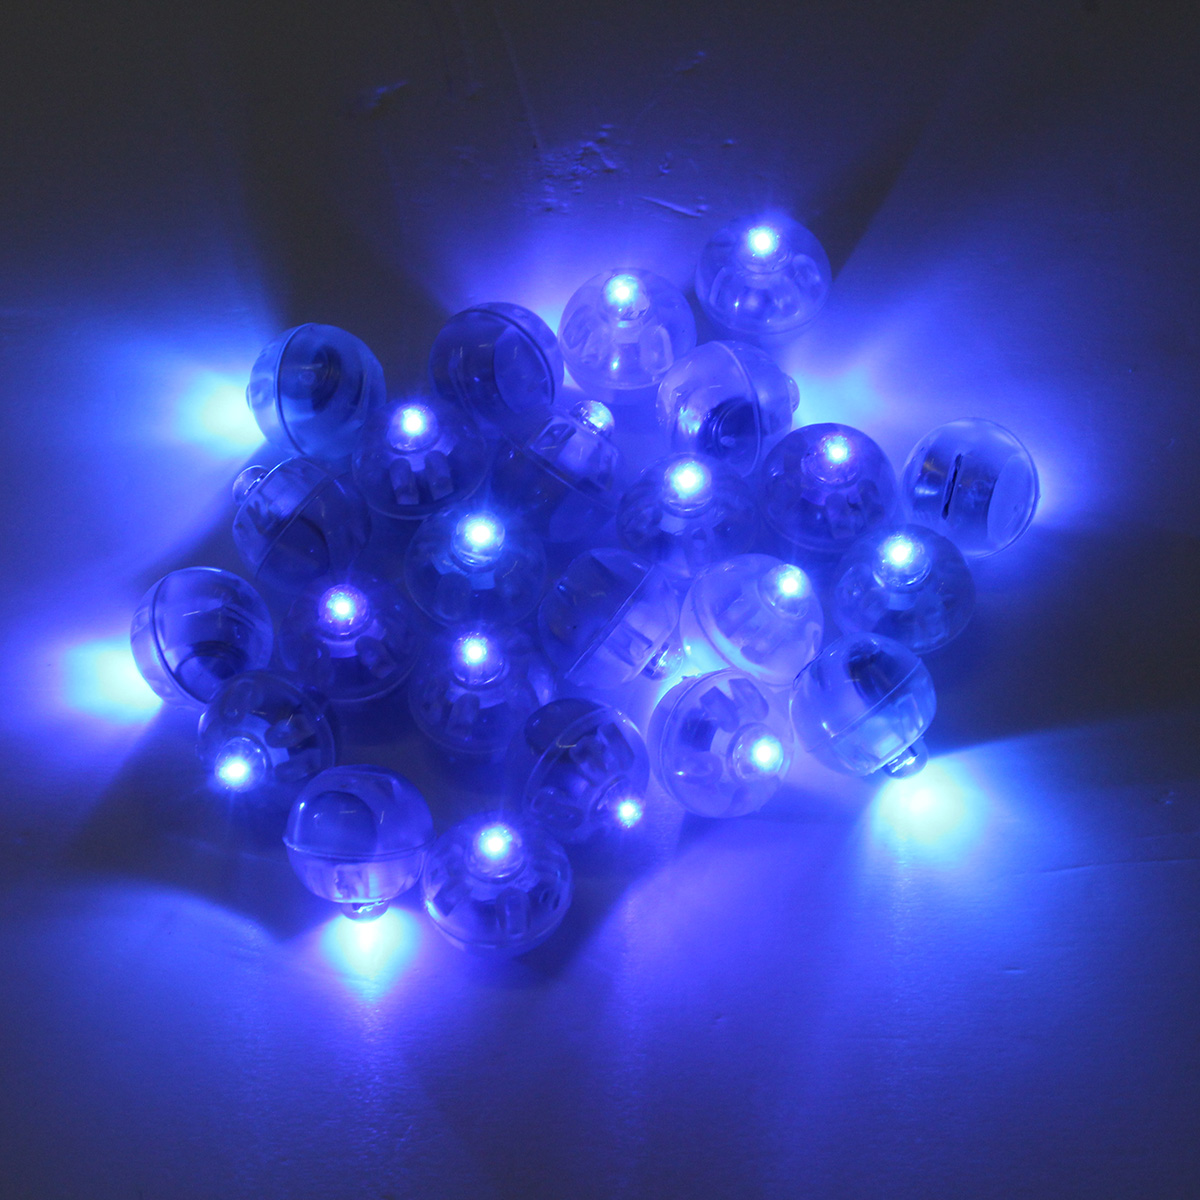 25pcs 1.7cm Round LED Balloon Light Lamp Glowing Balloon Lights Birthday Wedding Party Decoration